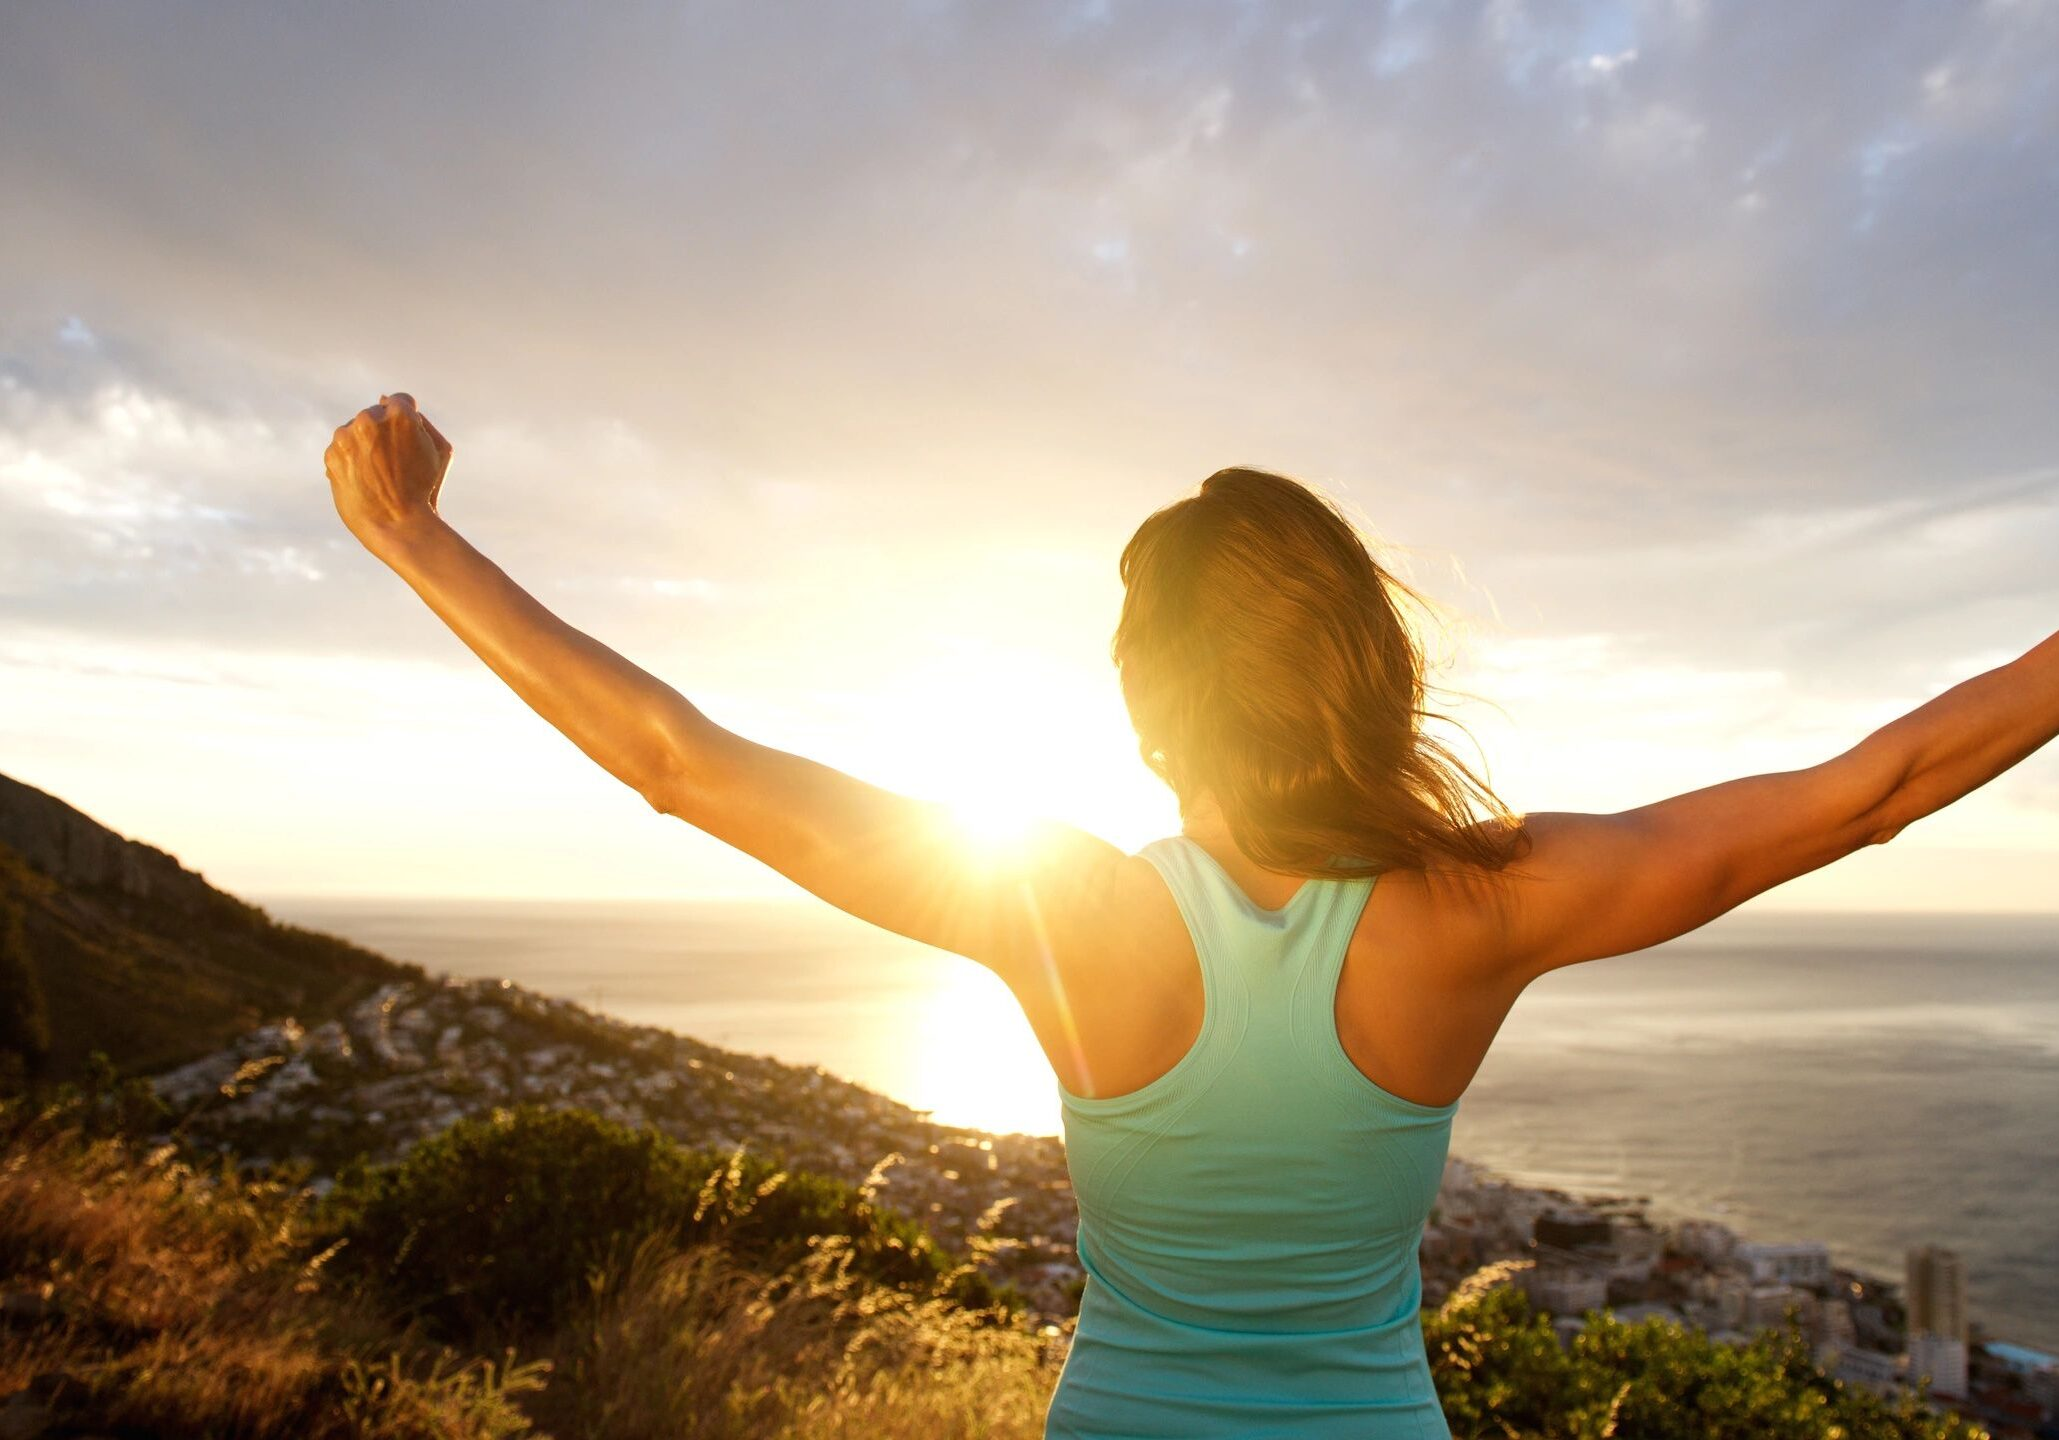 Fitness Services - Attain your fitness goals! - Movement, Yoga, Qi Gong, JuJitzu, Fitness Training, Stretching, Increase Flexibility, Exercise | Massage - Lifestyle - Fitness | Natural Wellness Center of Ellijay | Massage Therapy | 11 Kiker Street | Ellijay GA